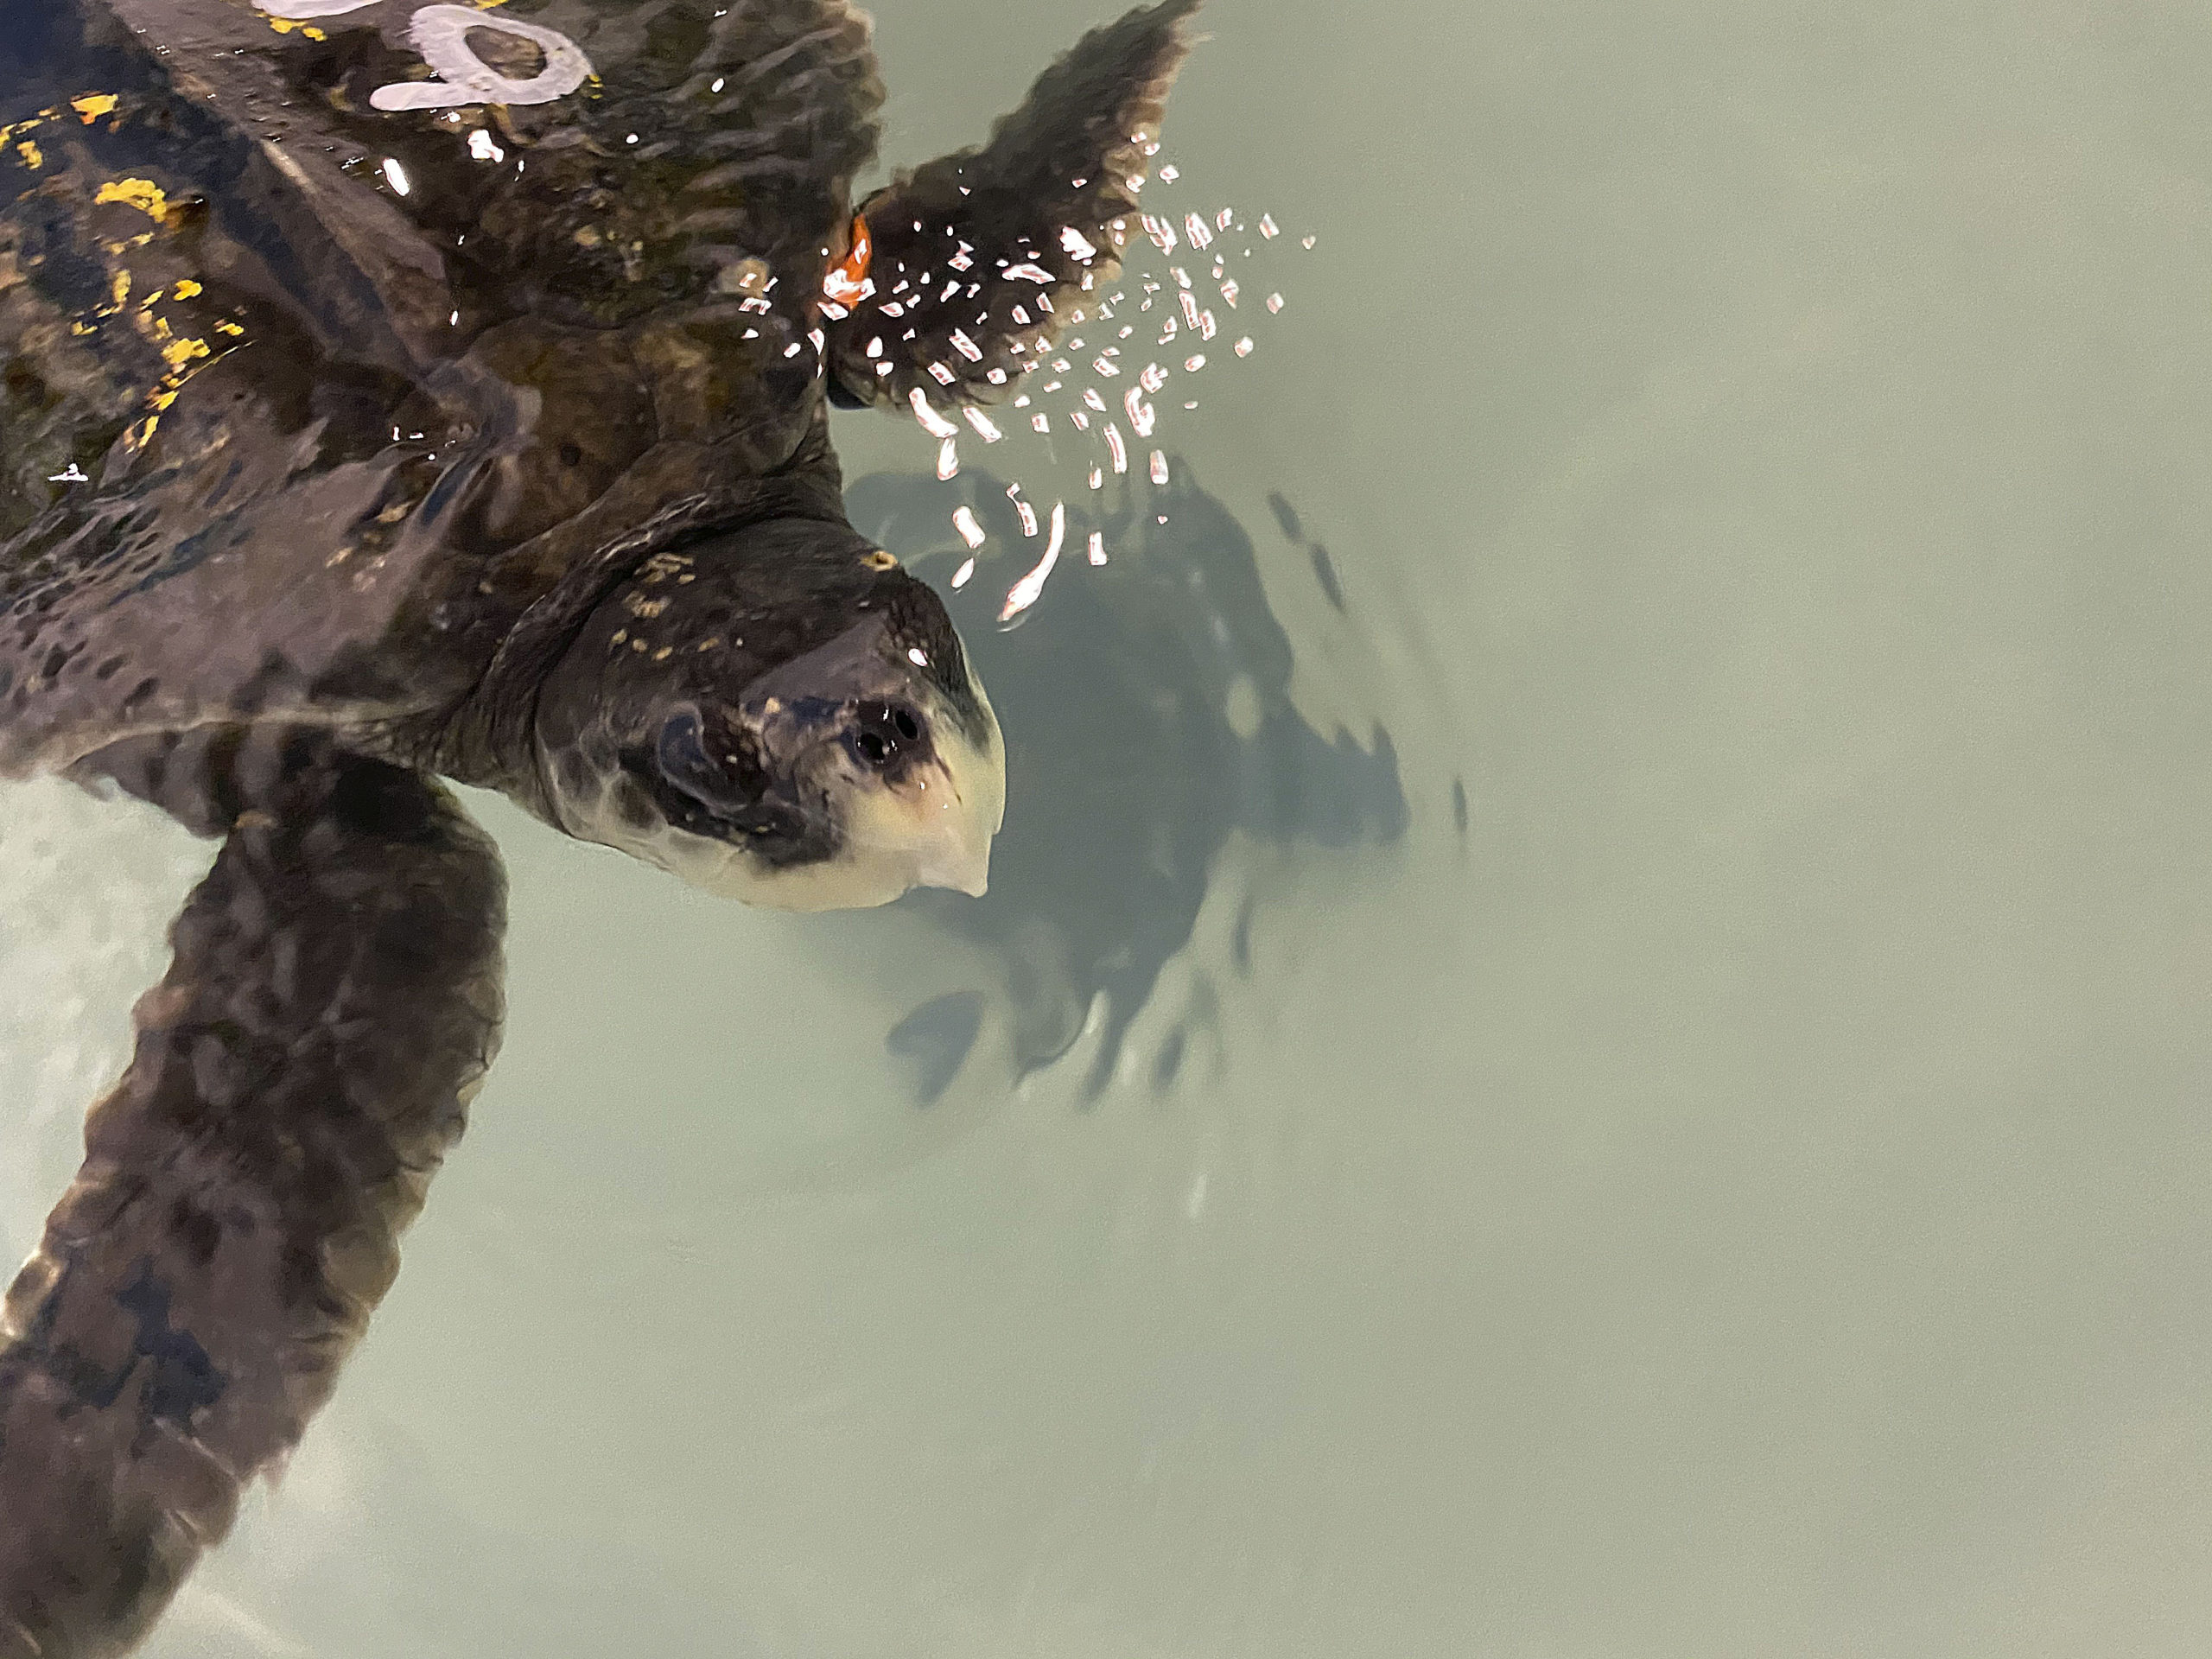 One the cold stunned Kemp's ridley sea turtles residing at Atlantic Marine Conservation Society. DANA SHAW